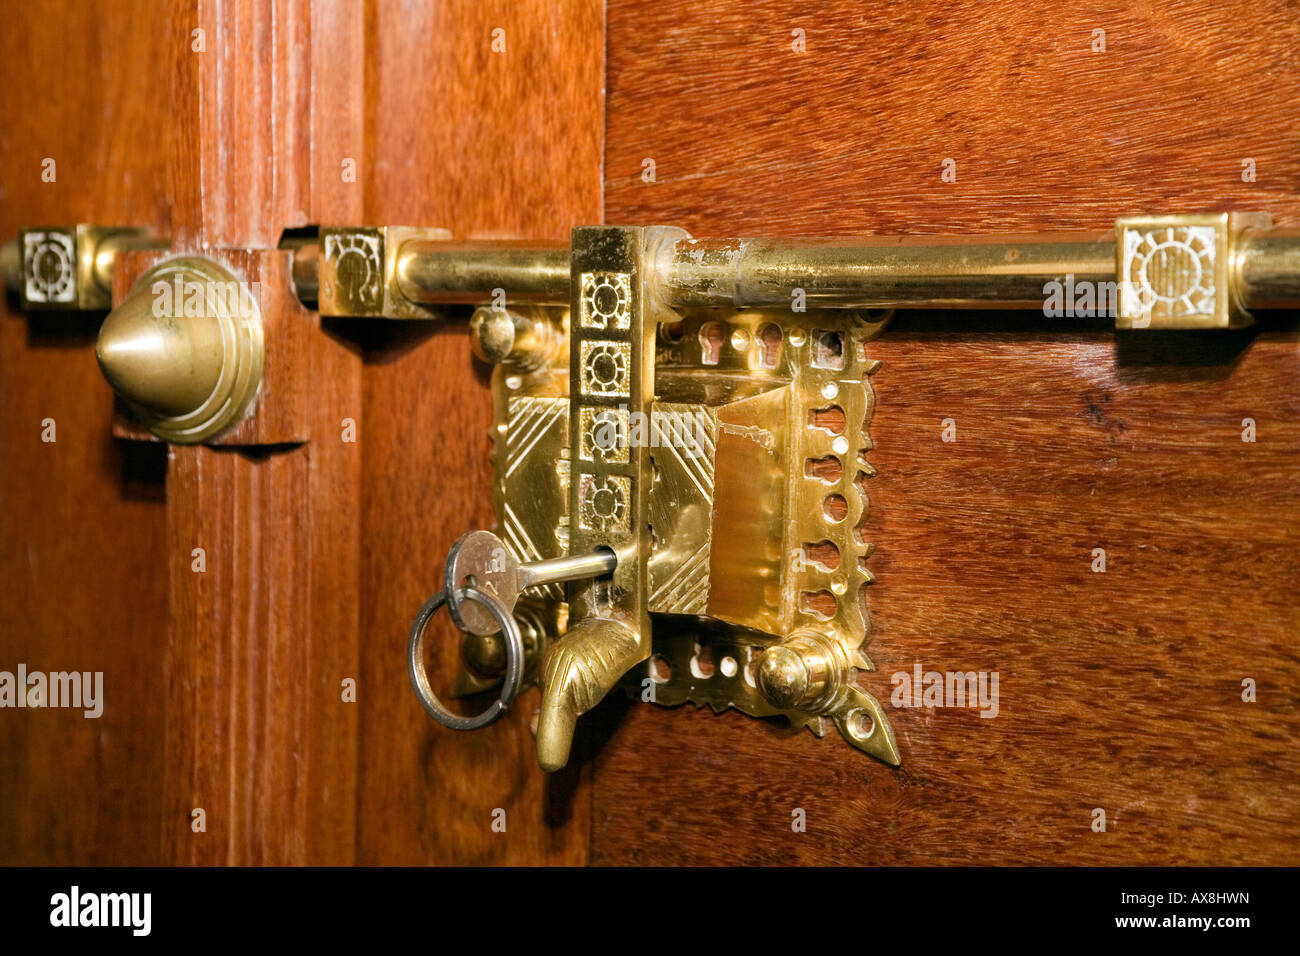 Antique Brass Door Latch And Lock Typical Of Traditional